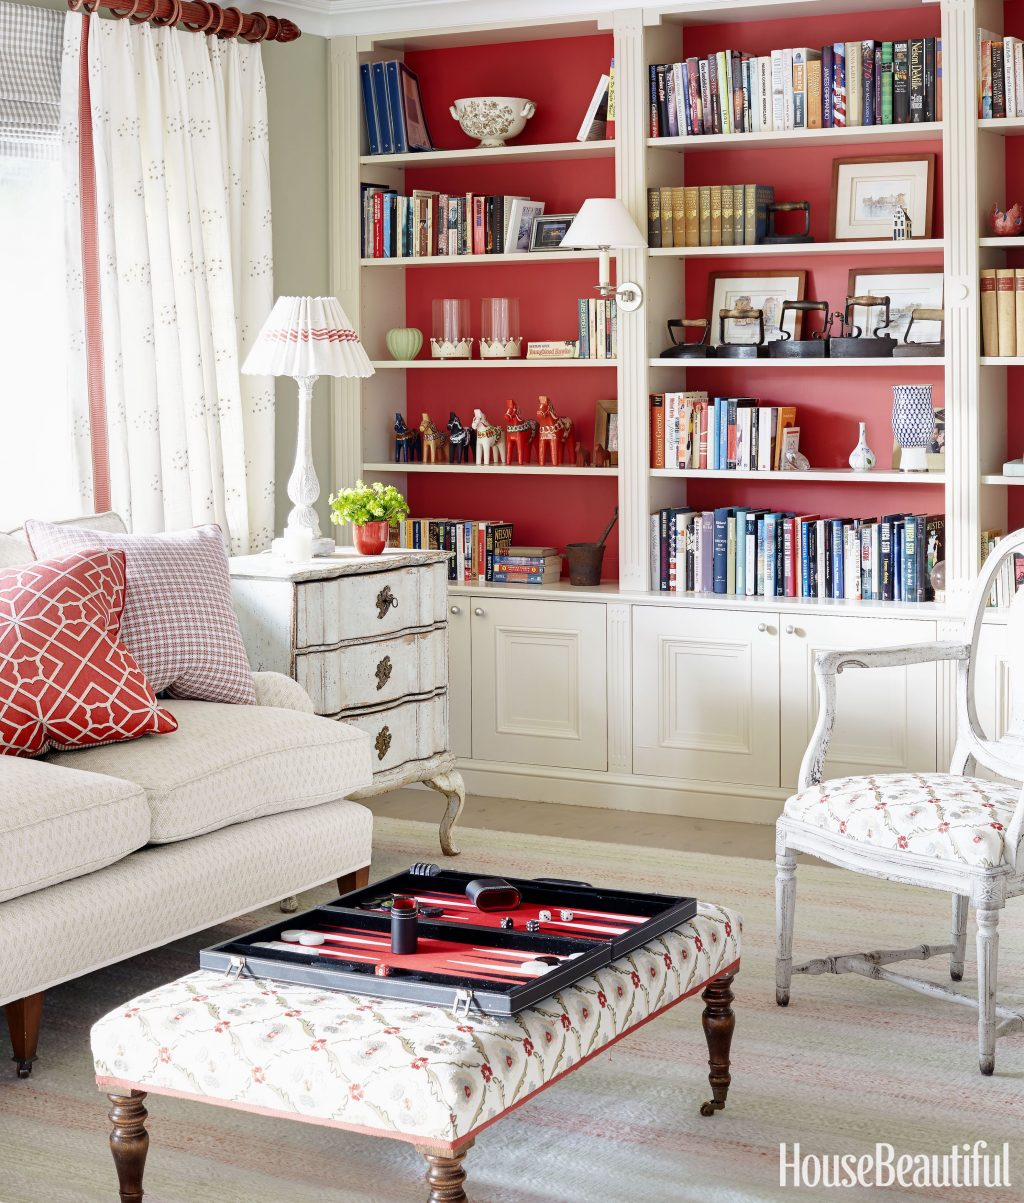 This Home Will Convince You To Decorate Swedish Style Bookshelves